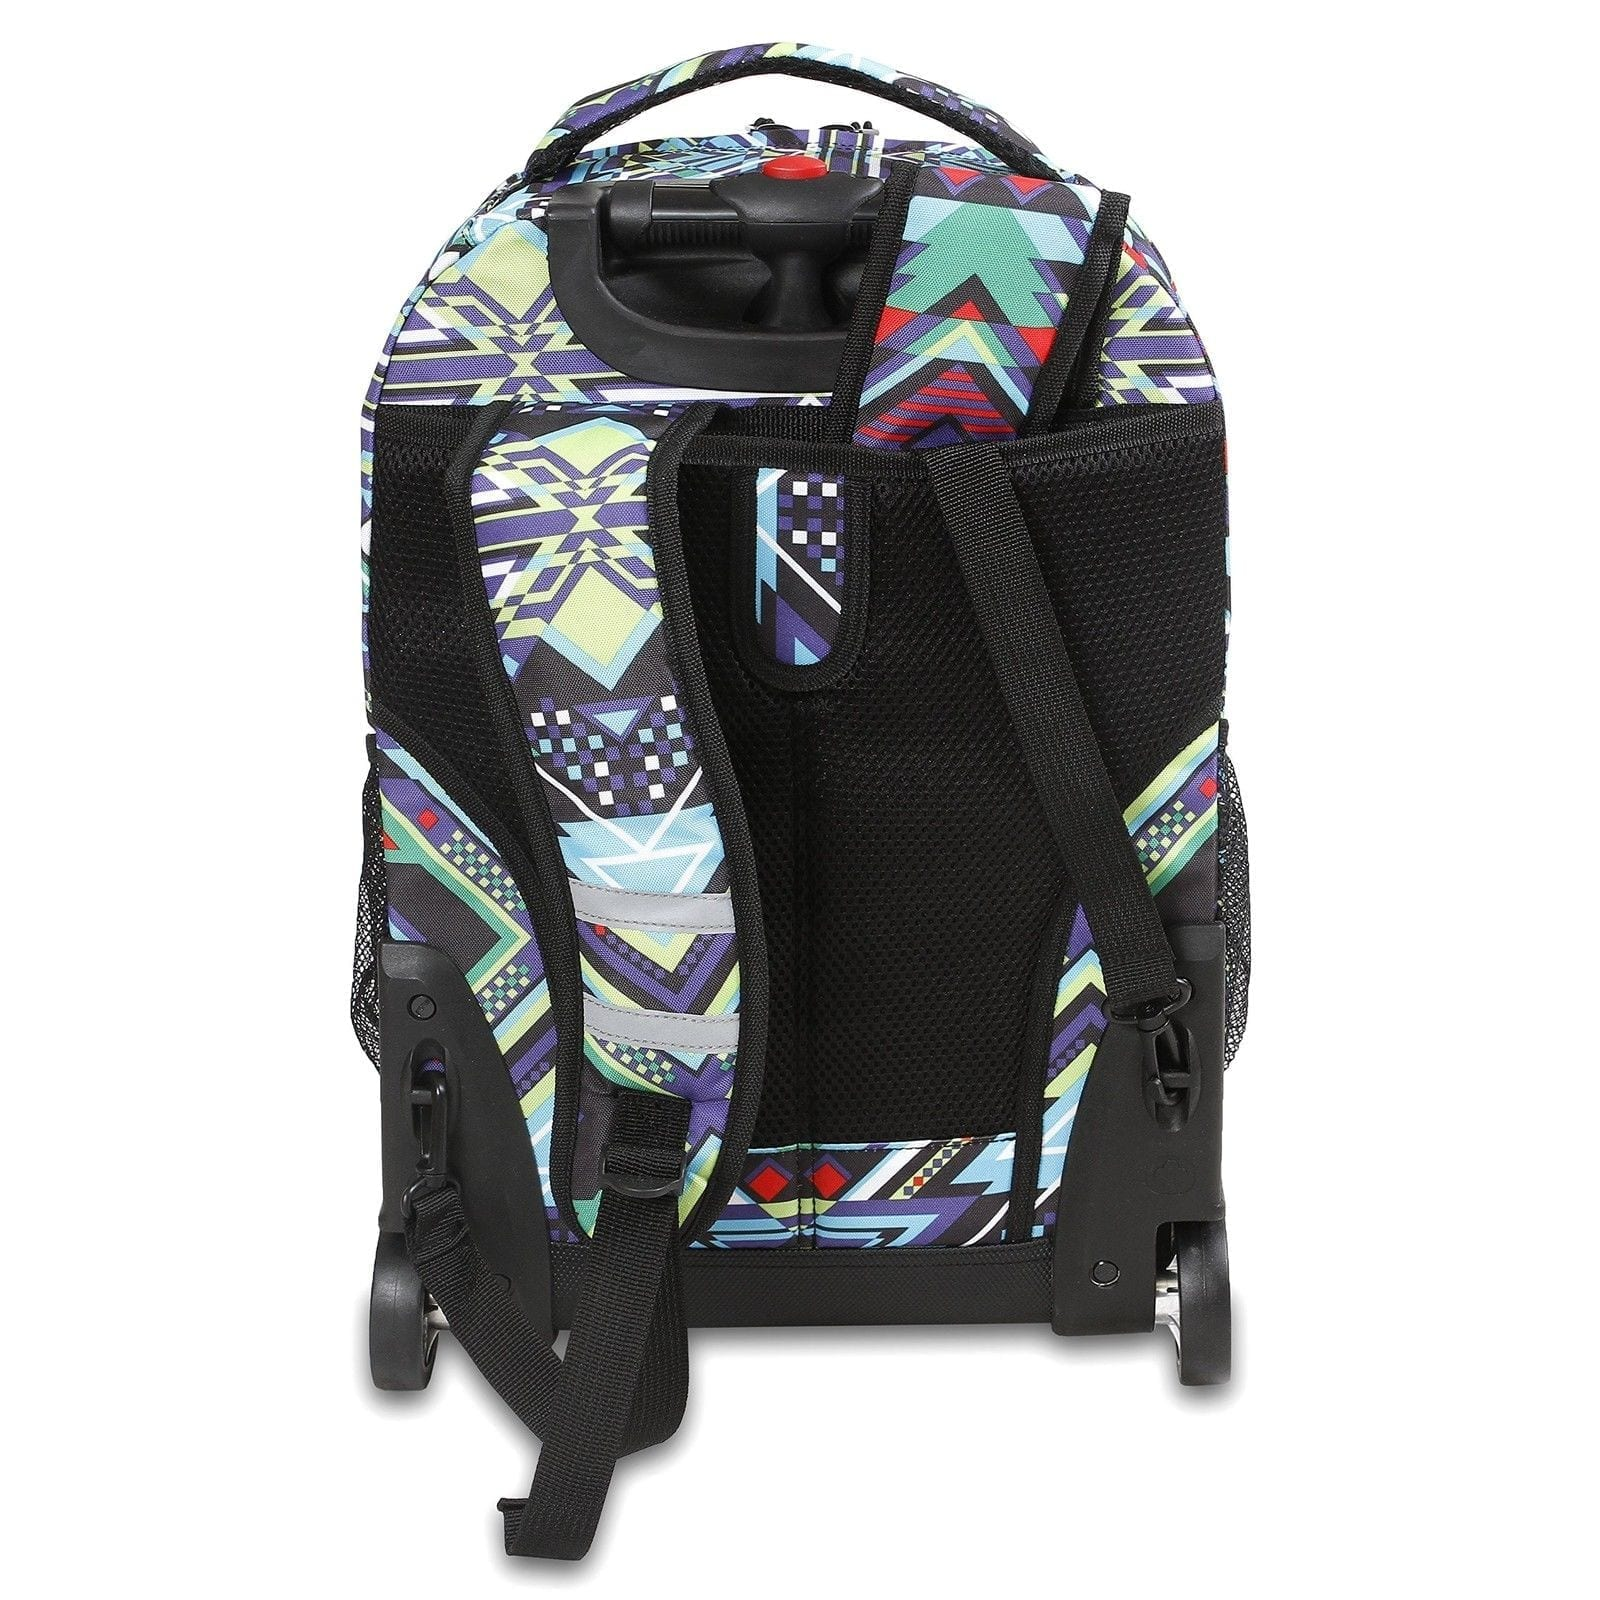 J World Rolling Backpack Zega Babybliss